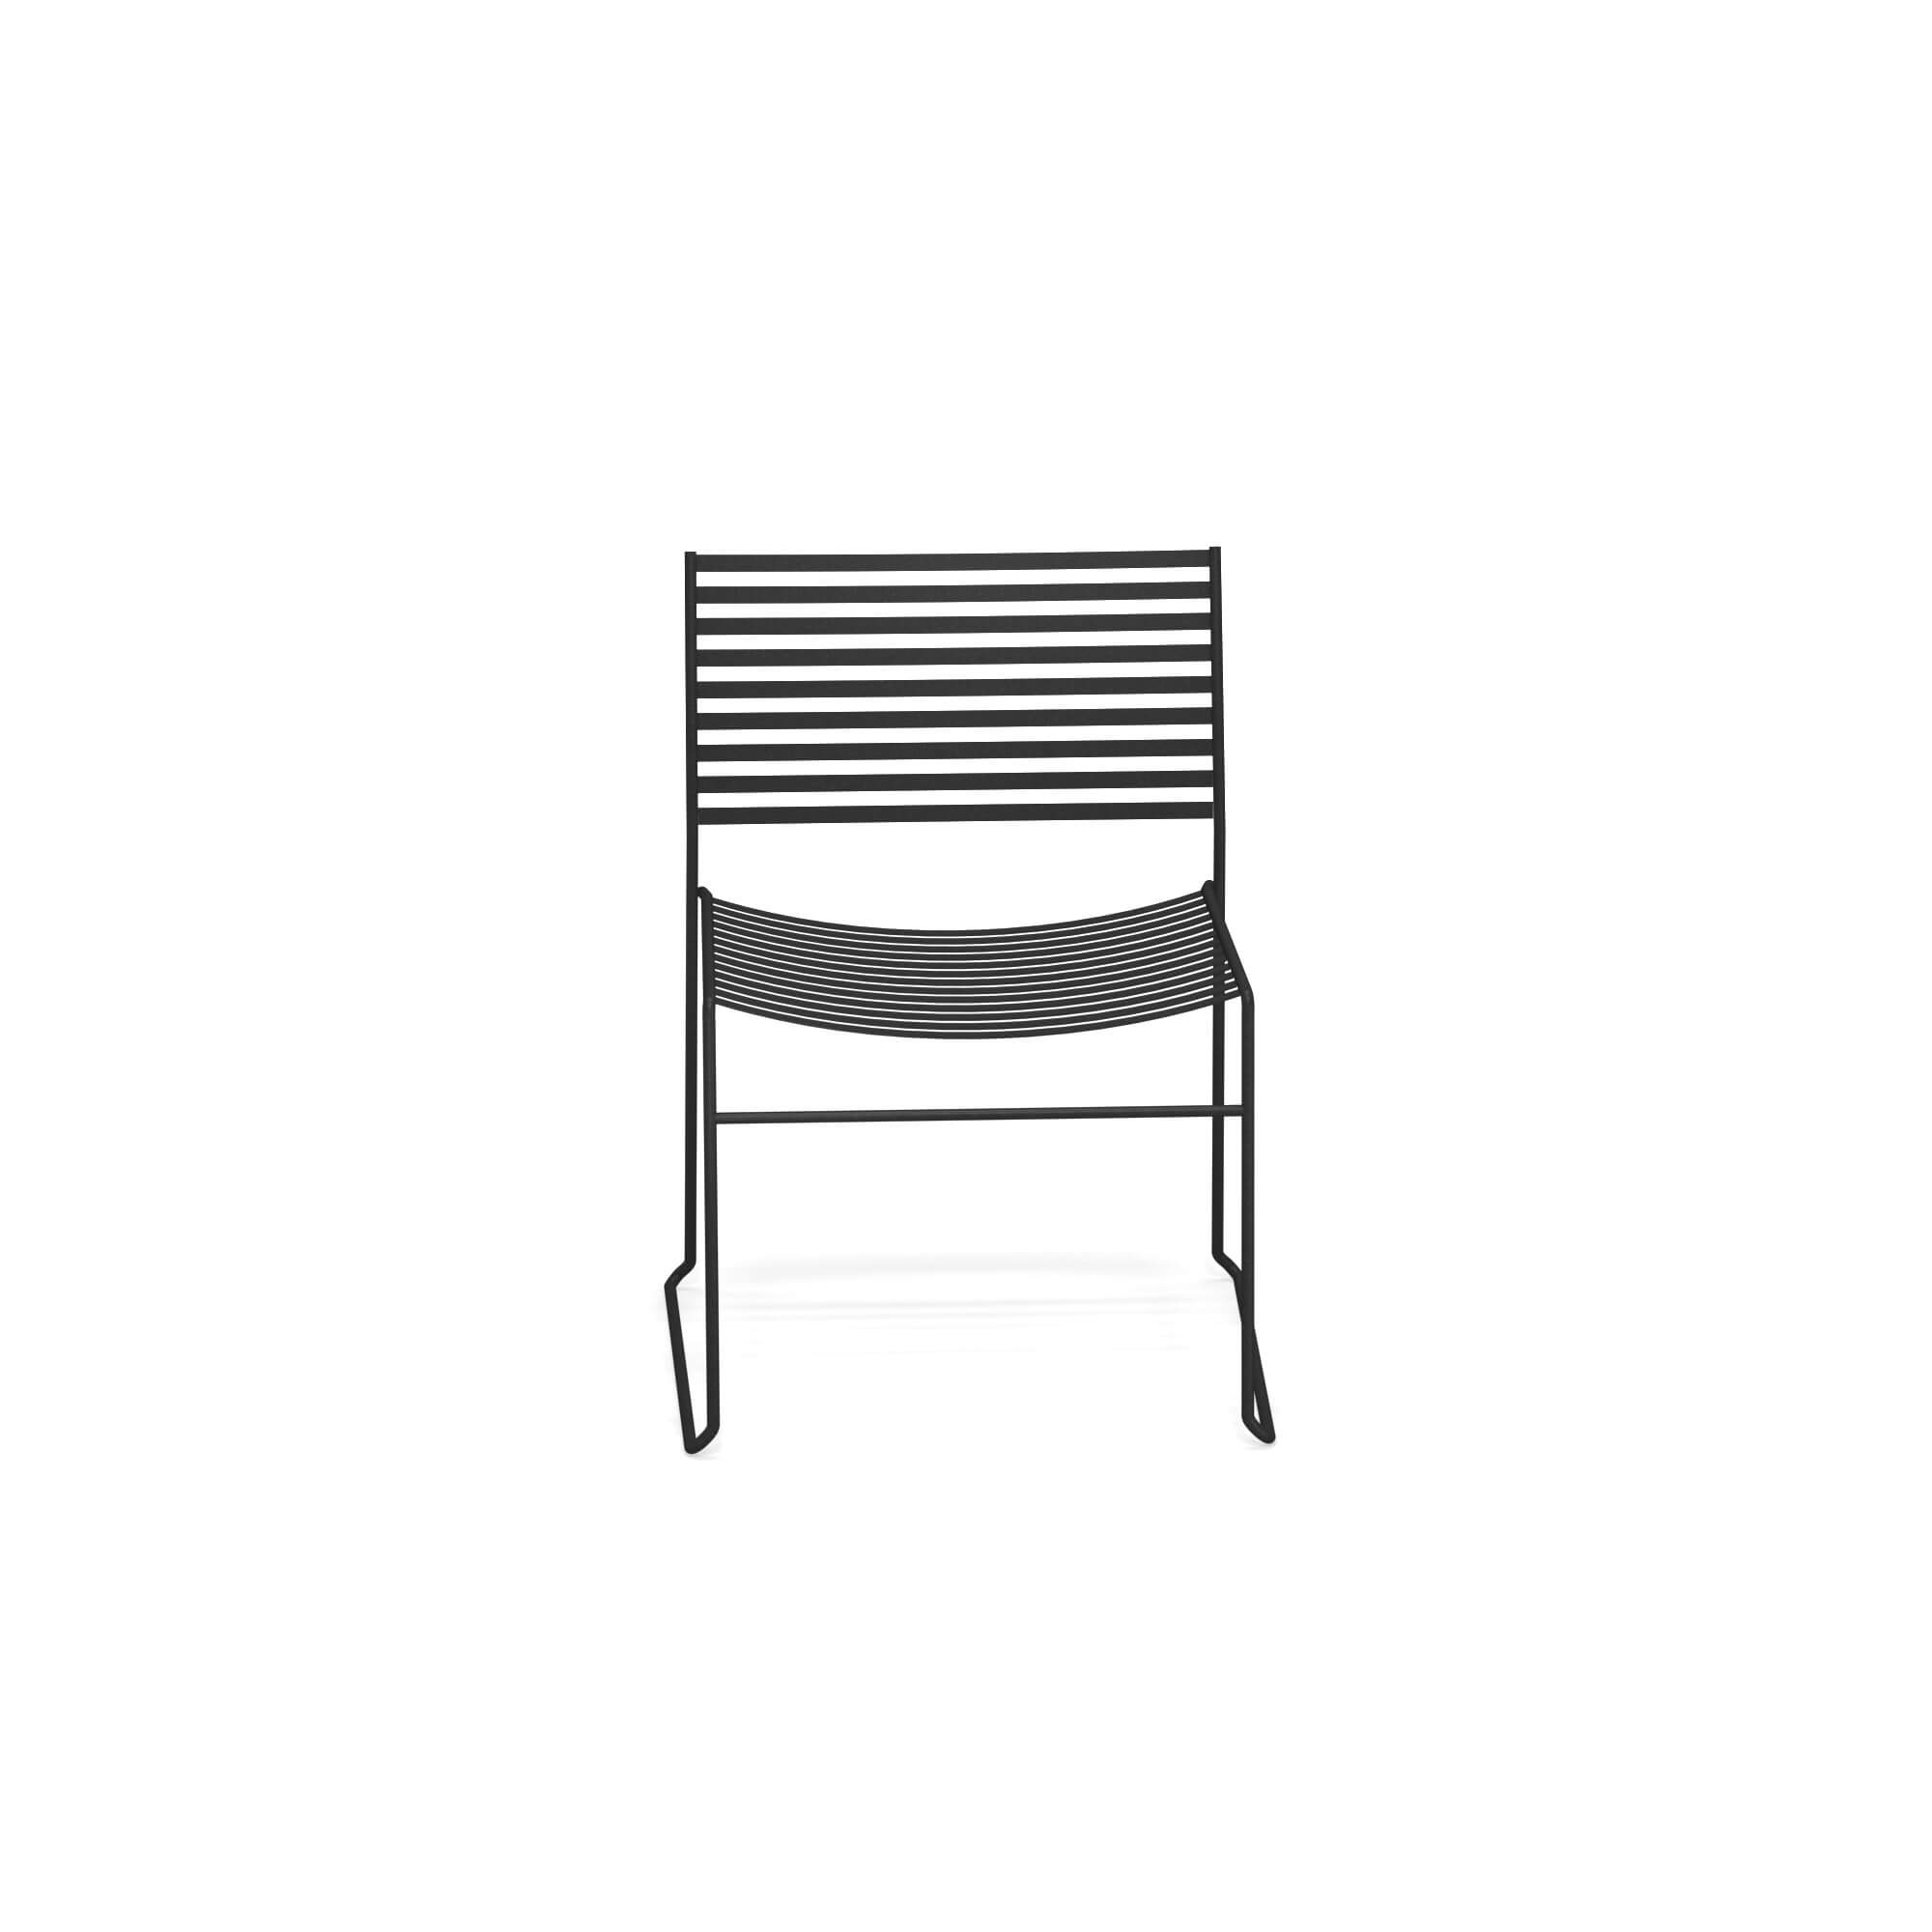 Super Garden Lounge Chair Outside In Steel Collection Aero Theyellowbook Wood Chair Design Ideas Theyellowbookinfo